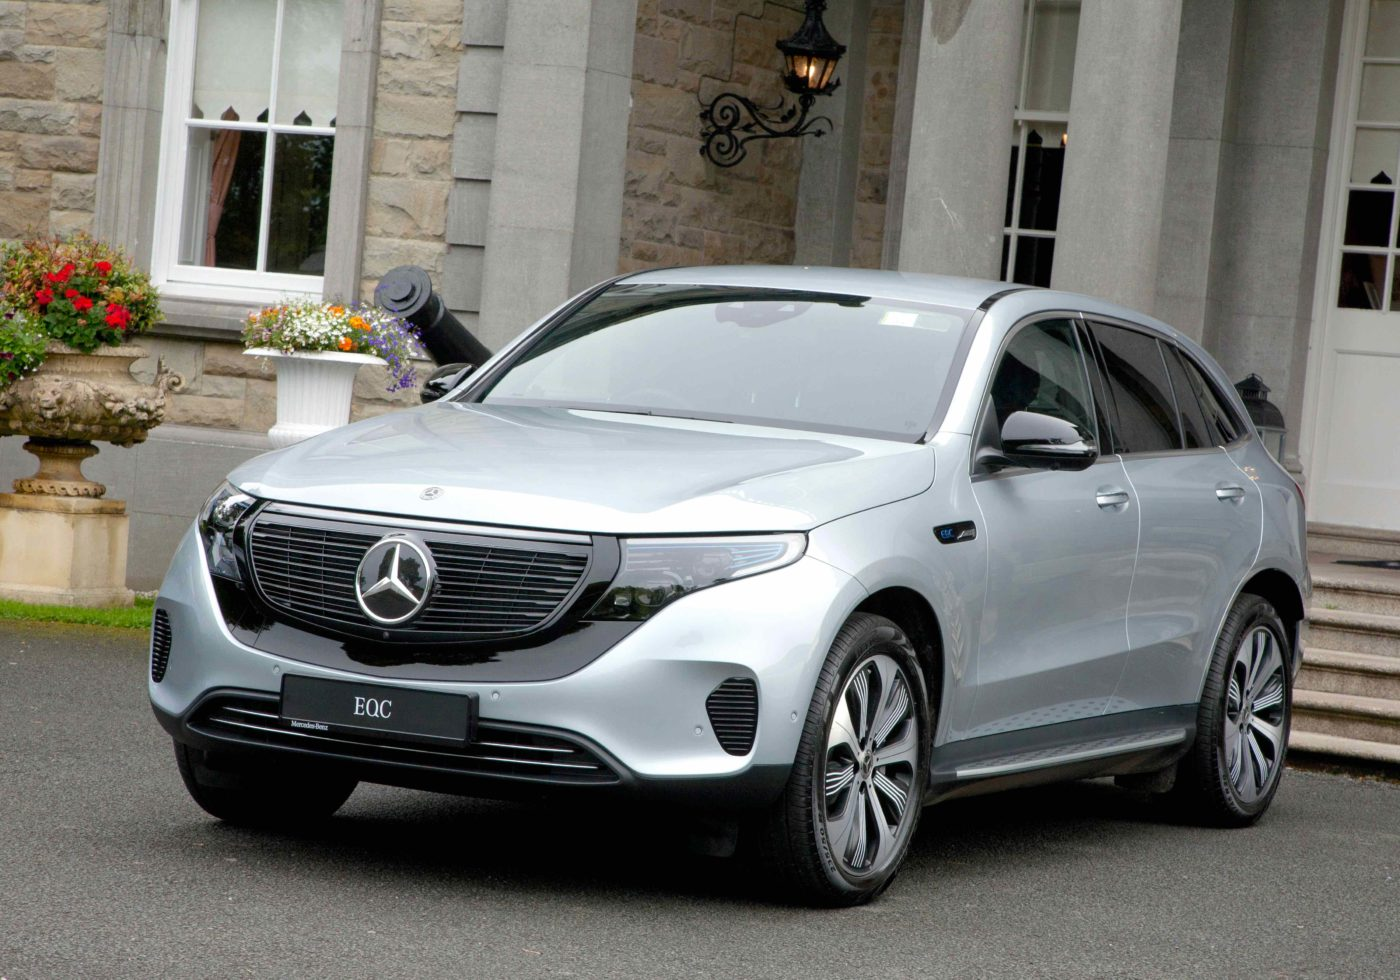 EQC - FIRST MERCEDES ELECTRIC CAR INTRODUCED AHEAD OF Q4 ...